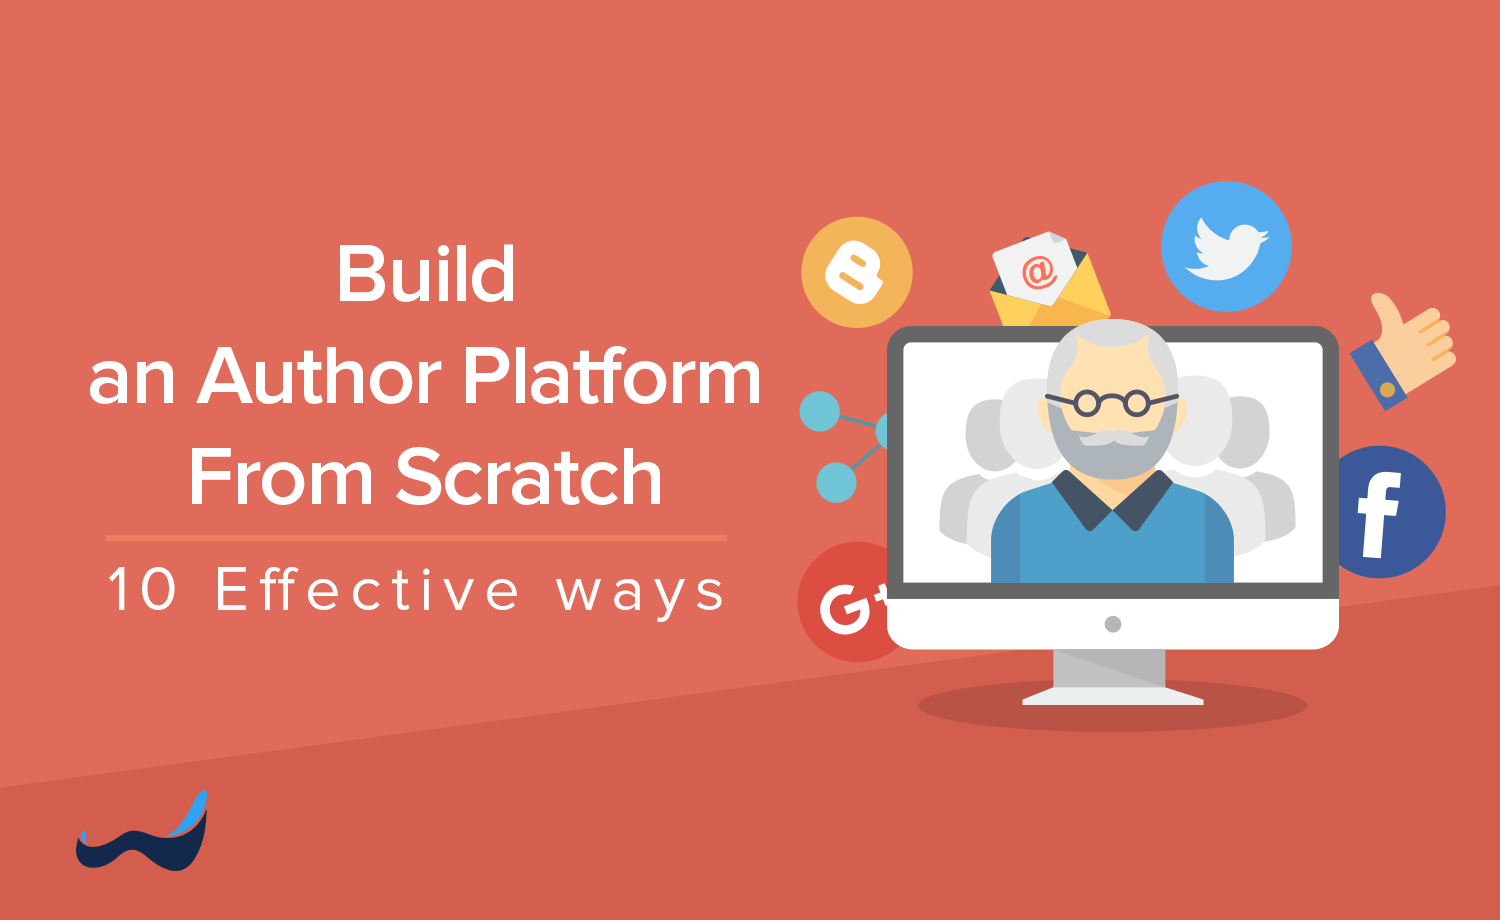 10 Highly Effective Ways to Build an Author Platform from Scratch